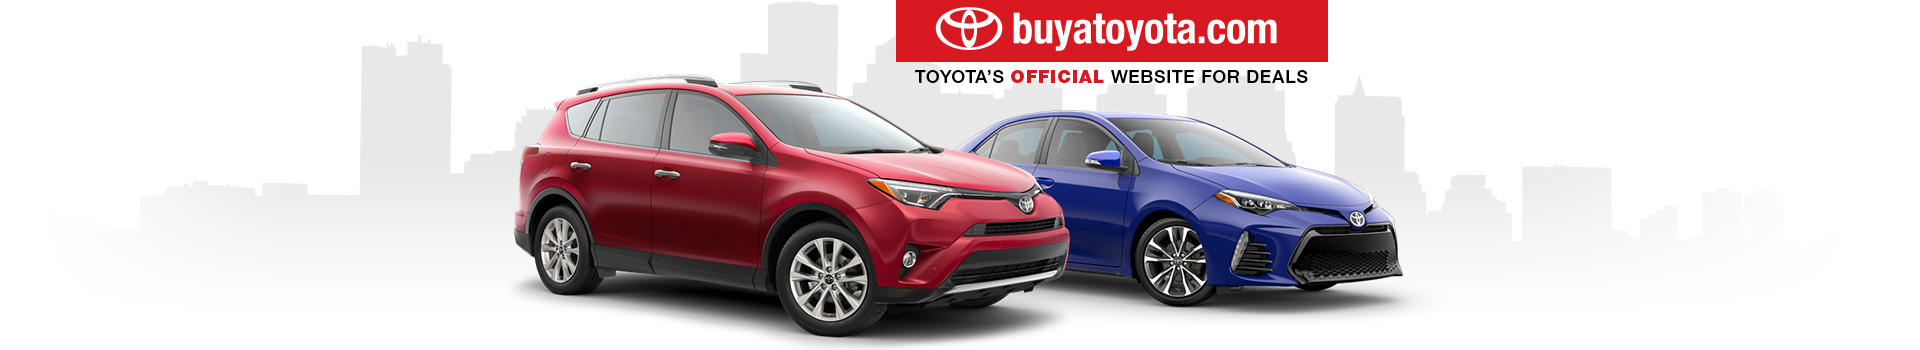 Toyota Local Offers Deals Incentives Atoyota Newengland